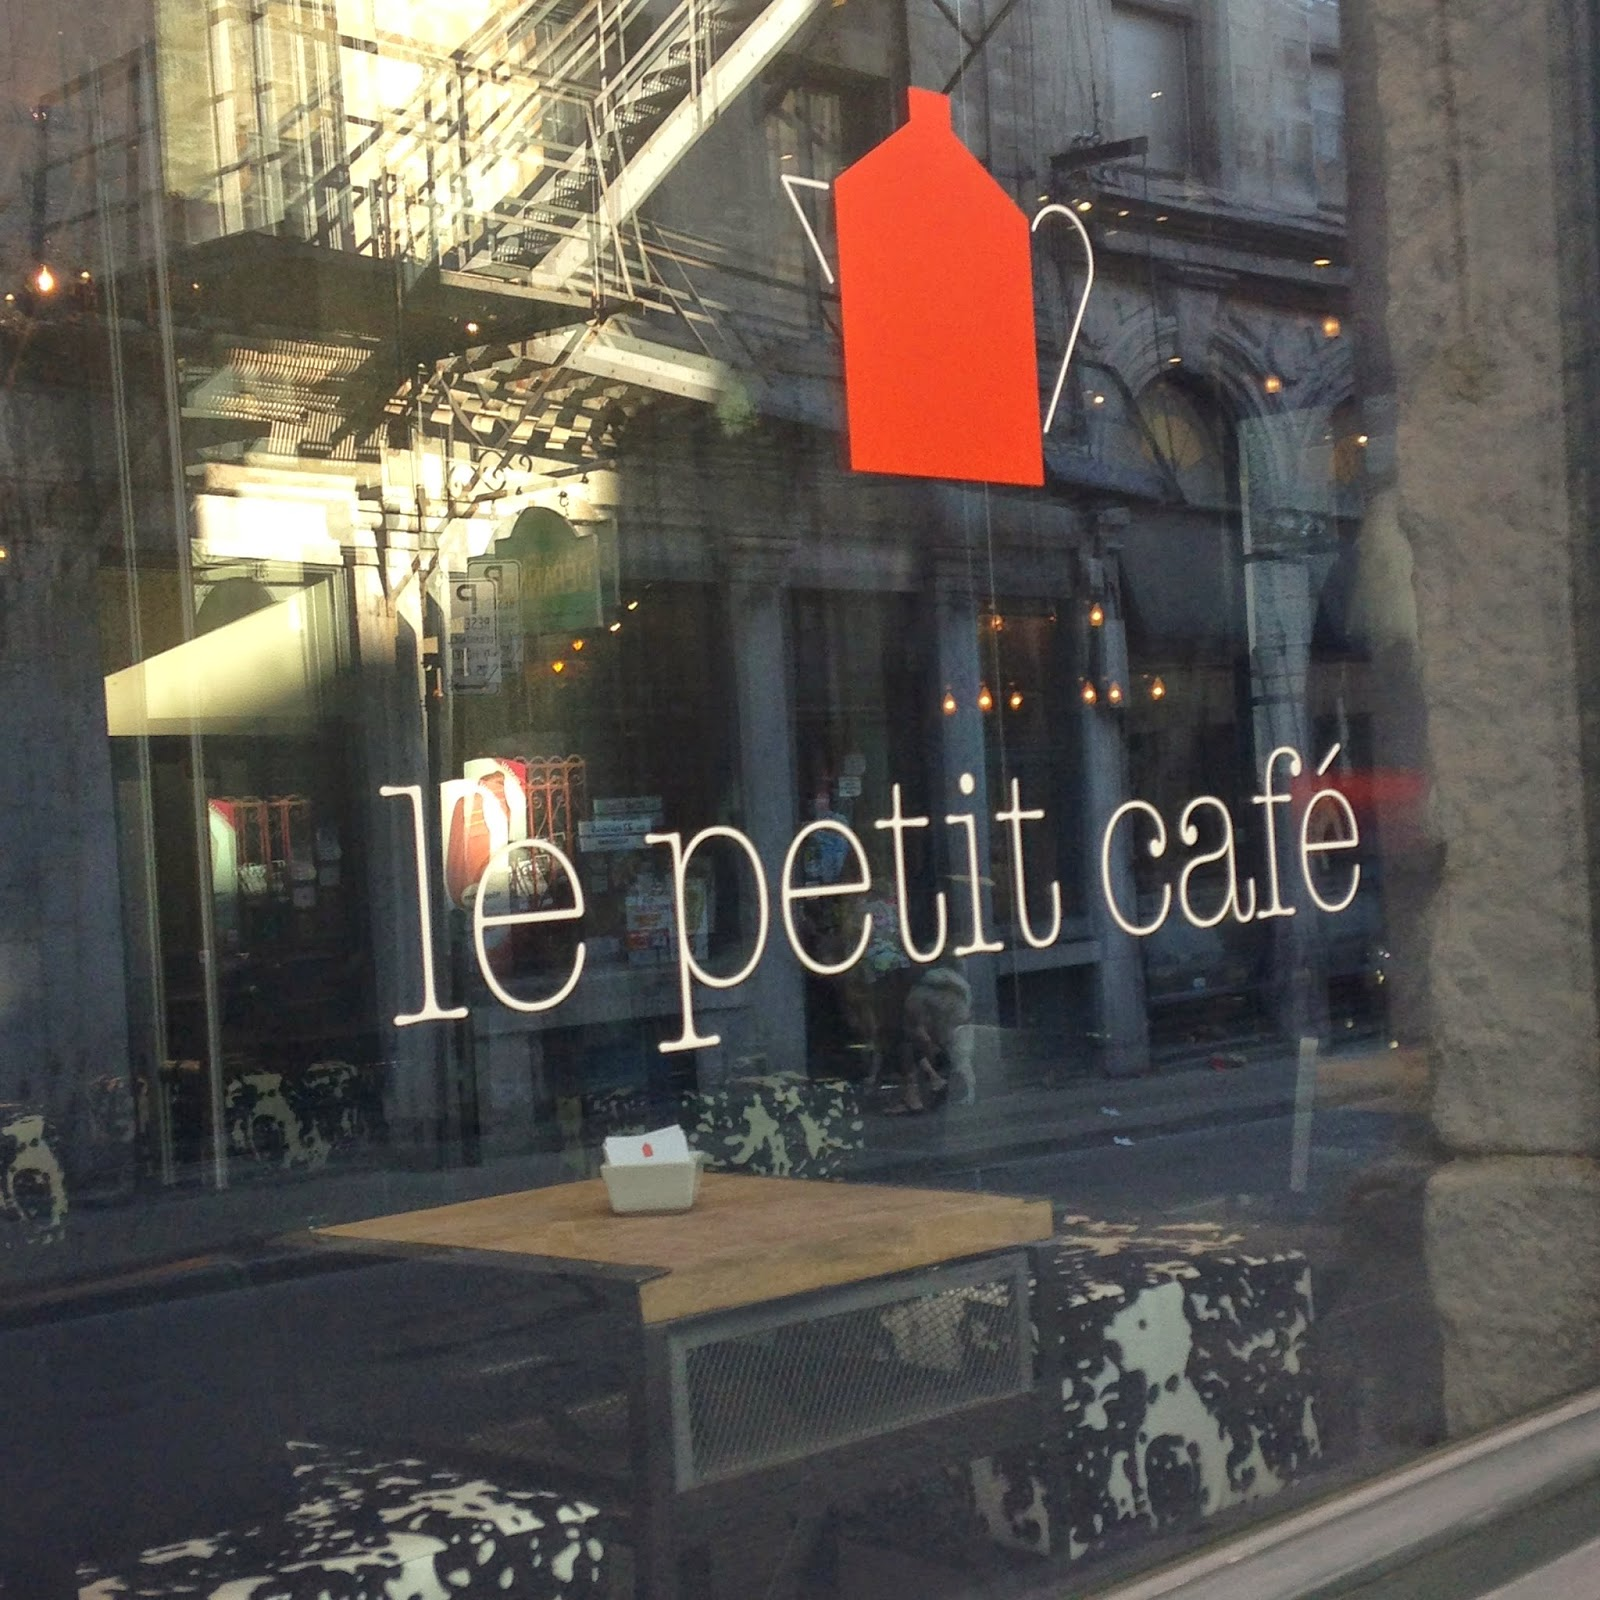 le petit cafe montreal trip advisor old port yelp review birthday